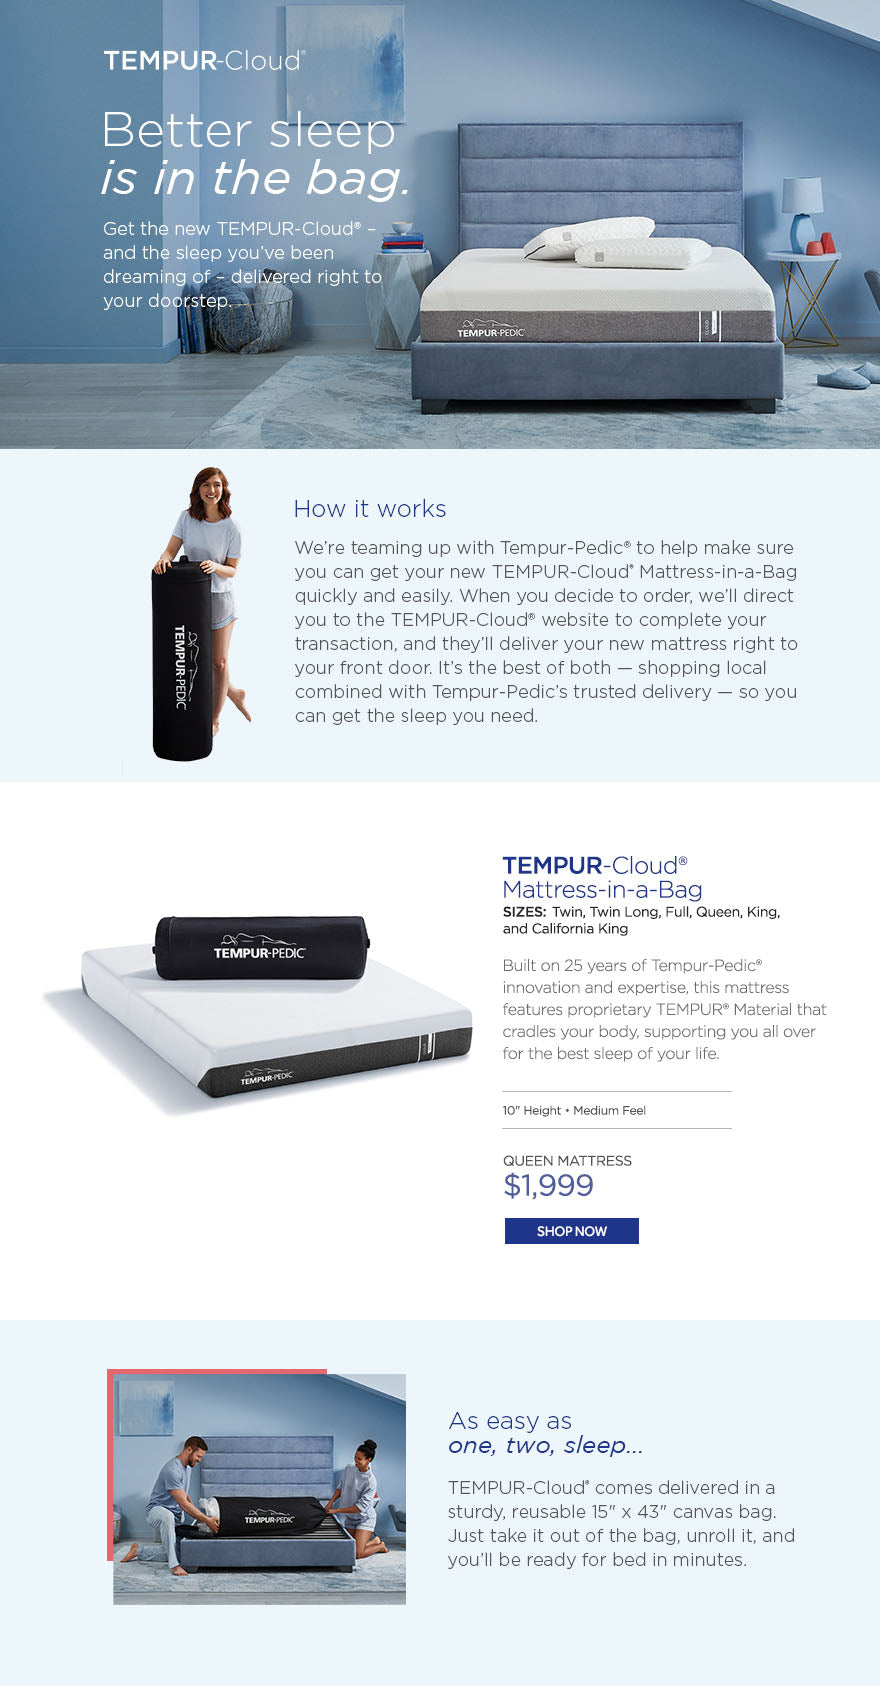 Tempur-Cloud Mattress in a Bag